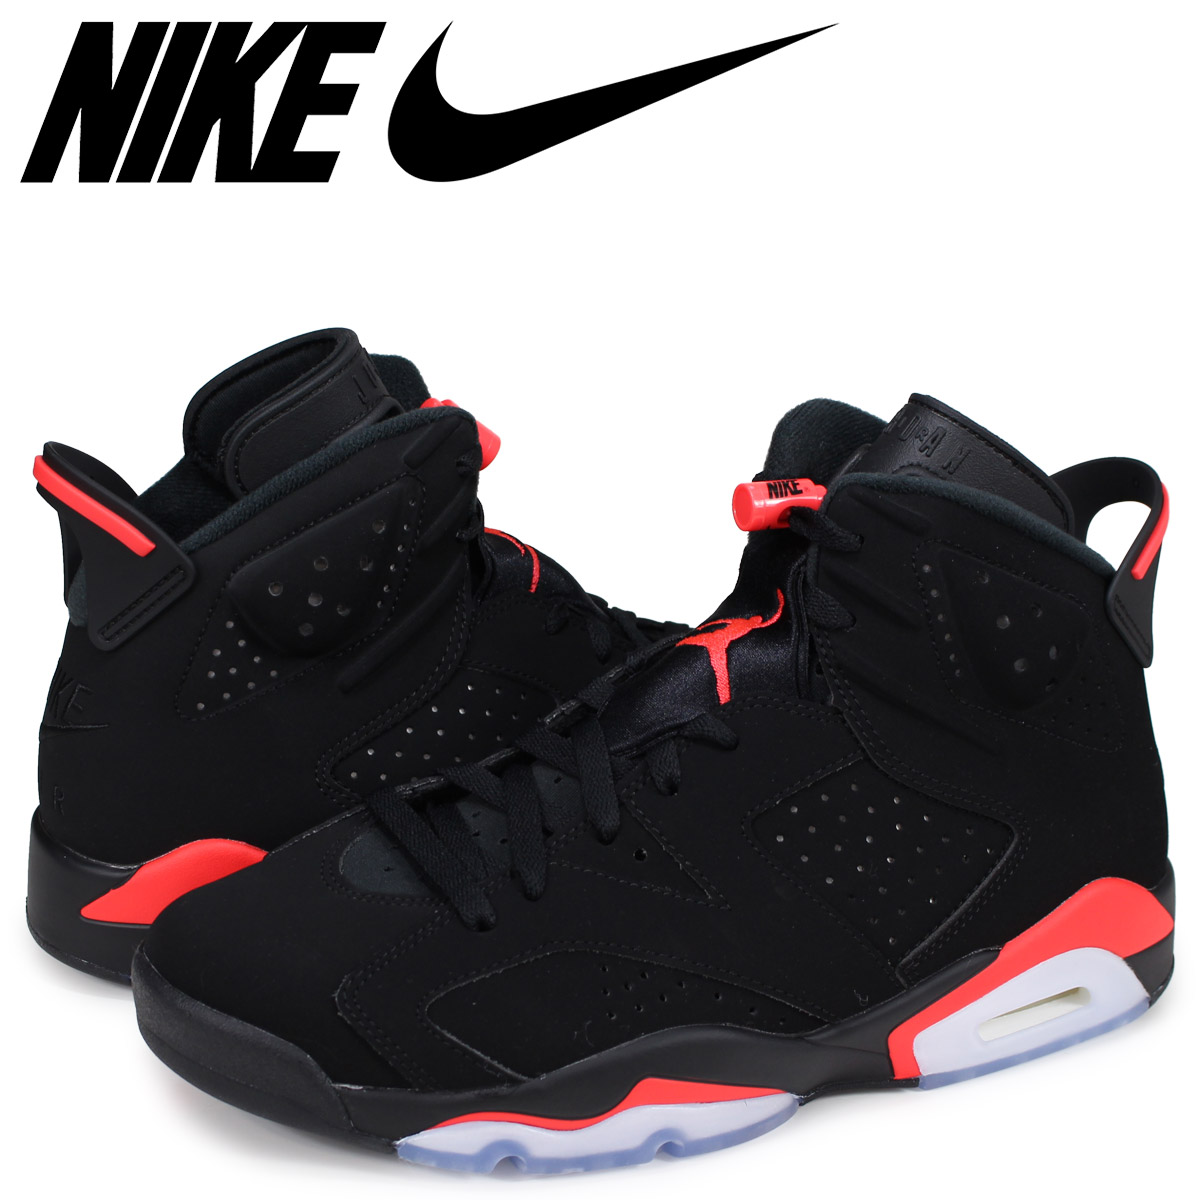 wholesale dealer ae000 ffe60 NIKE AIR JORDAN 6 RETRO Nike Air Jordan 6 nostalgic sneakers men black  infrastructure red 384,664-060  the 4 3 additional arrival